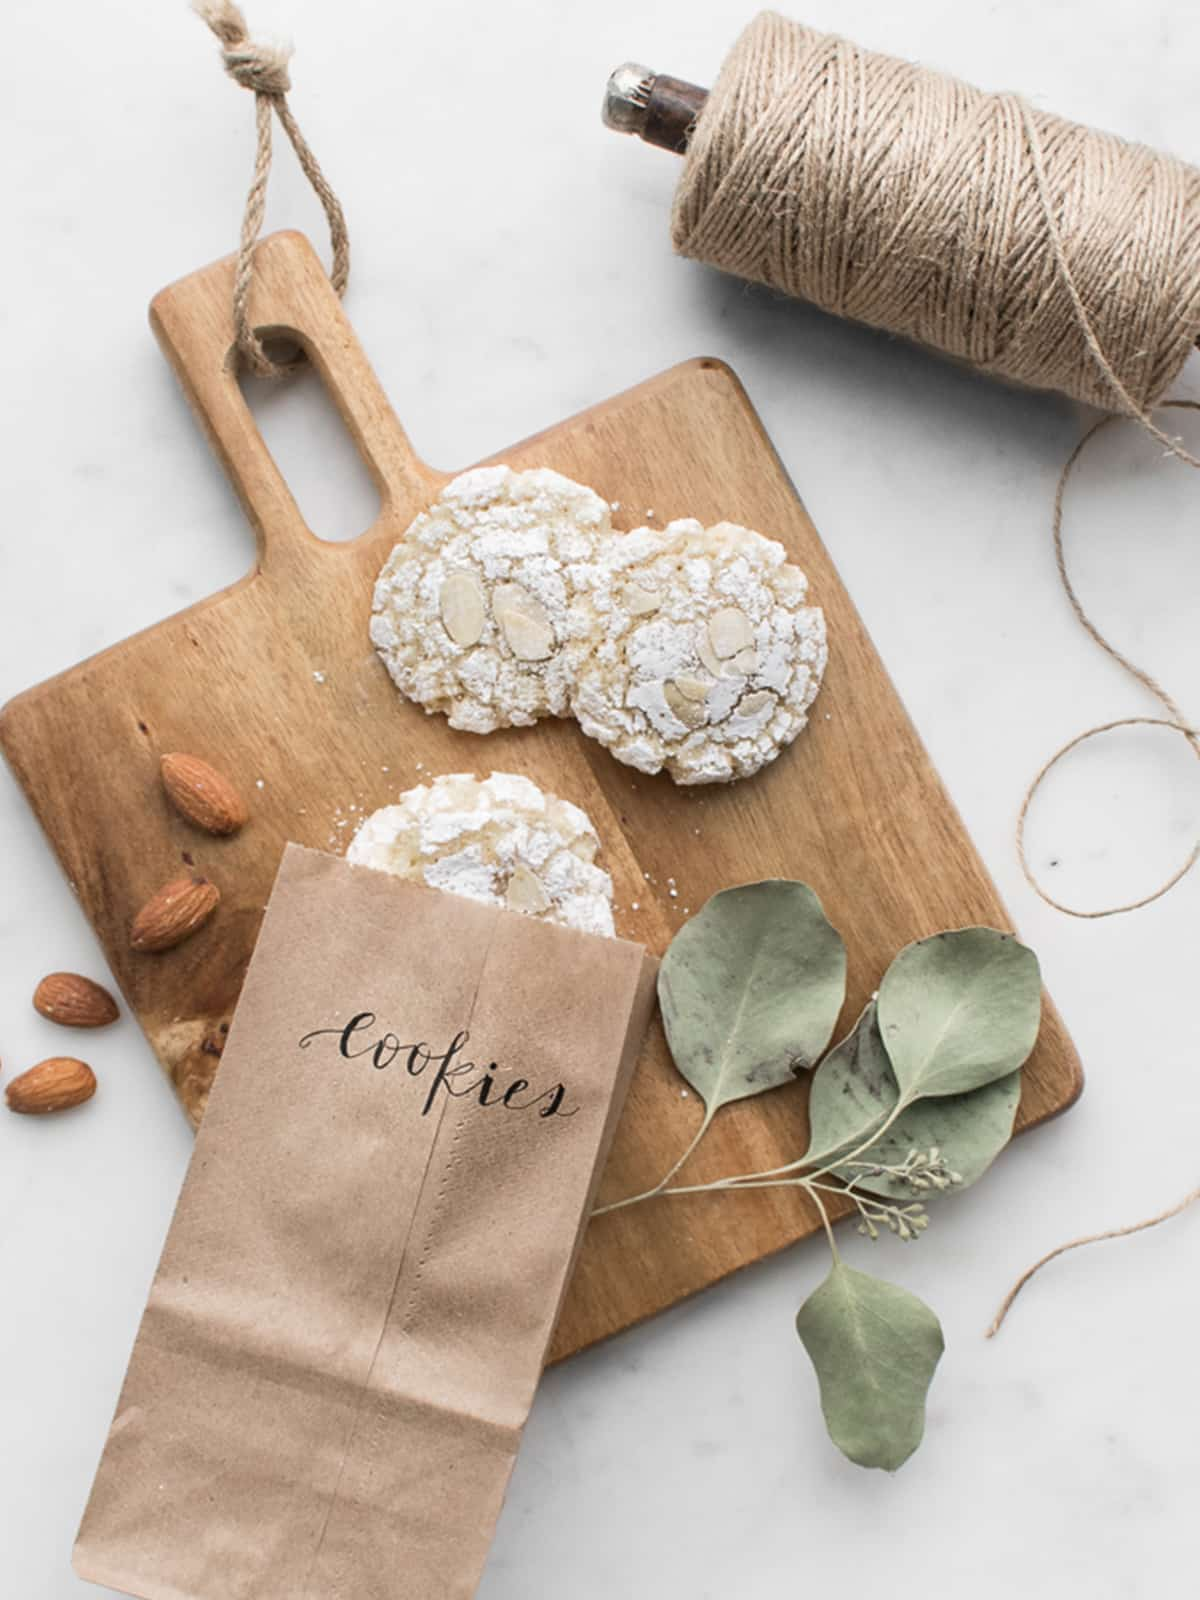 Amaretti Cookies on a wooden cutting board with craft paper bag, leaves, and twine